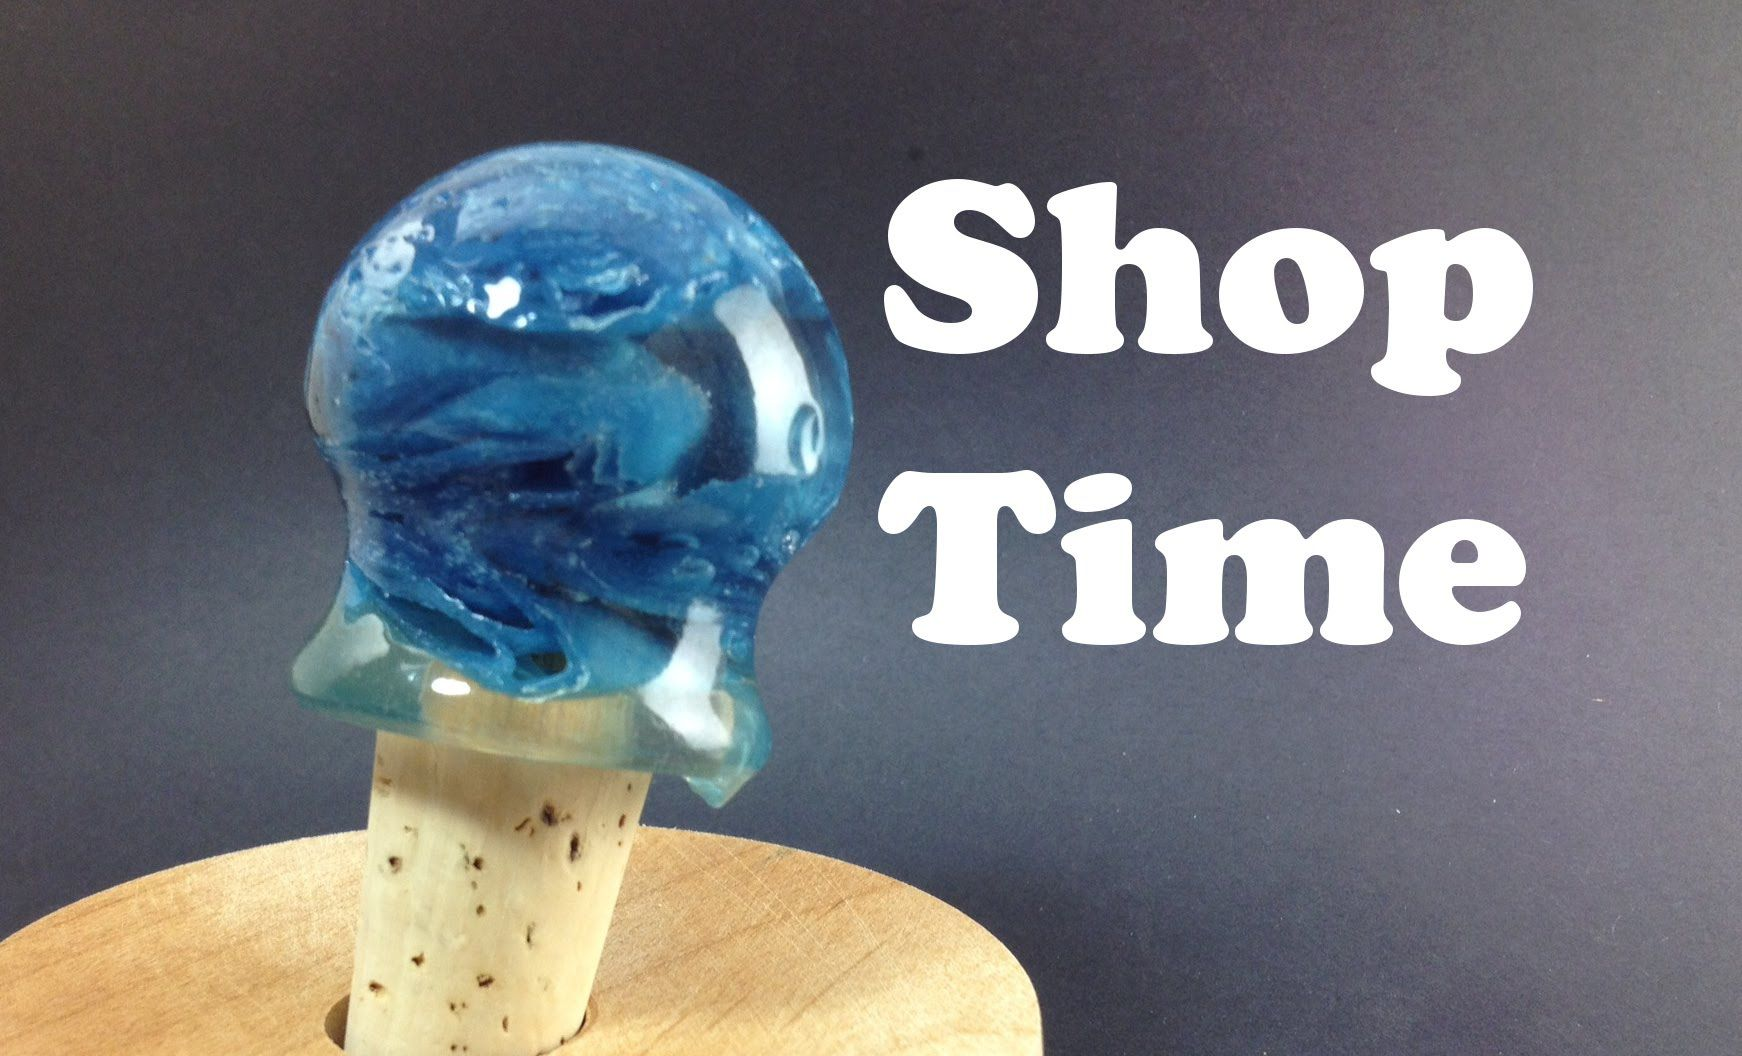 how to make a bottle stopper